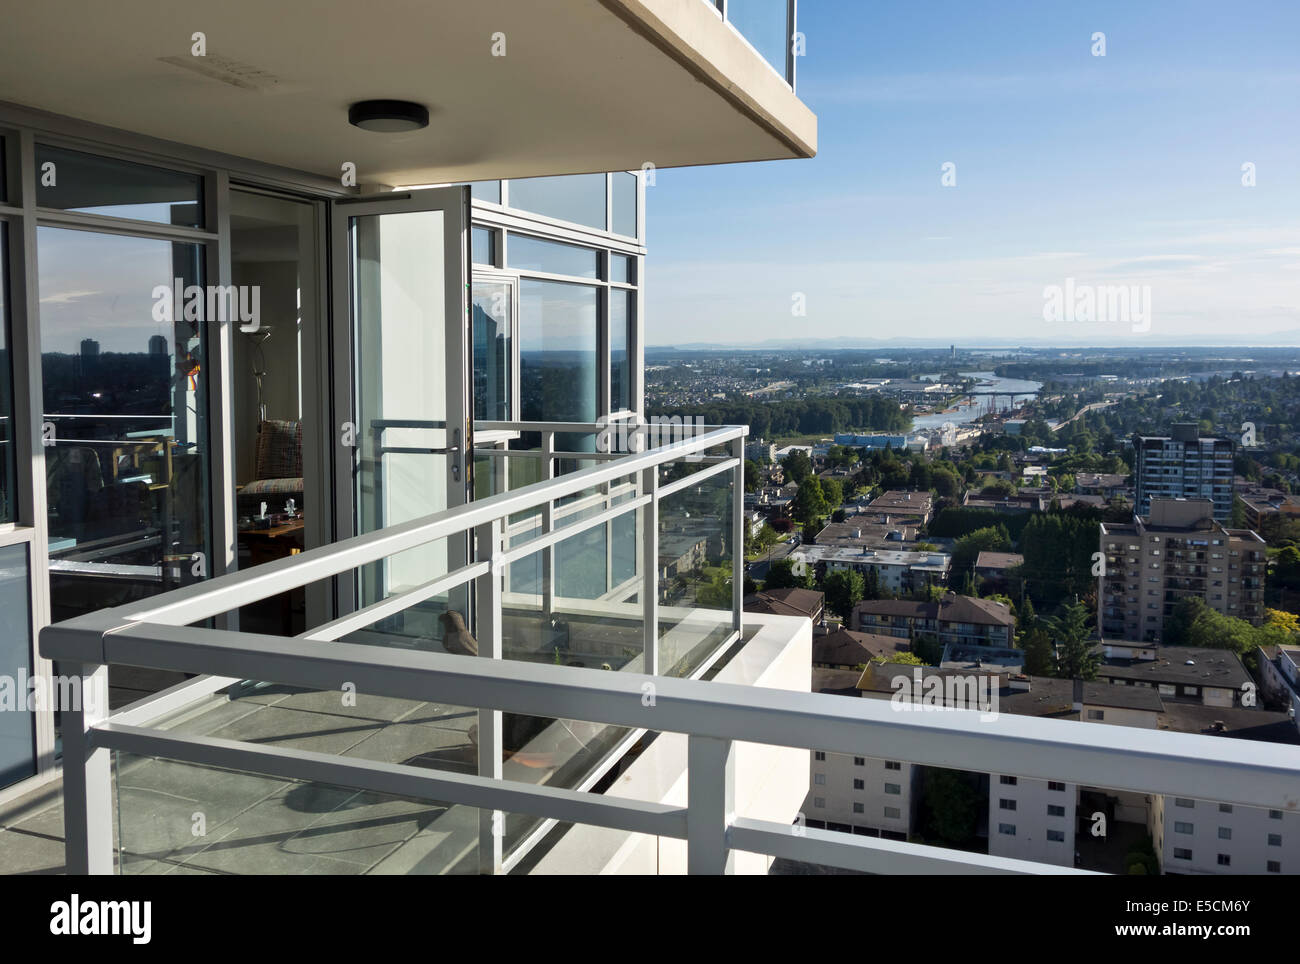 Hotels In New Westminster Bc